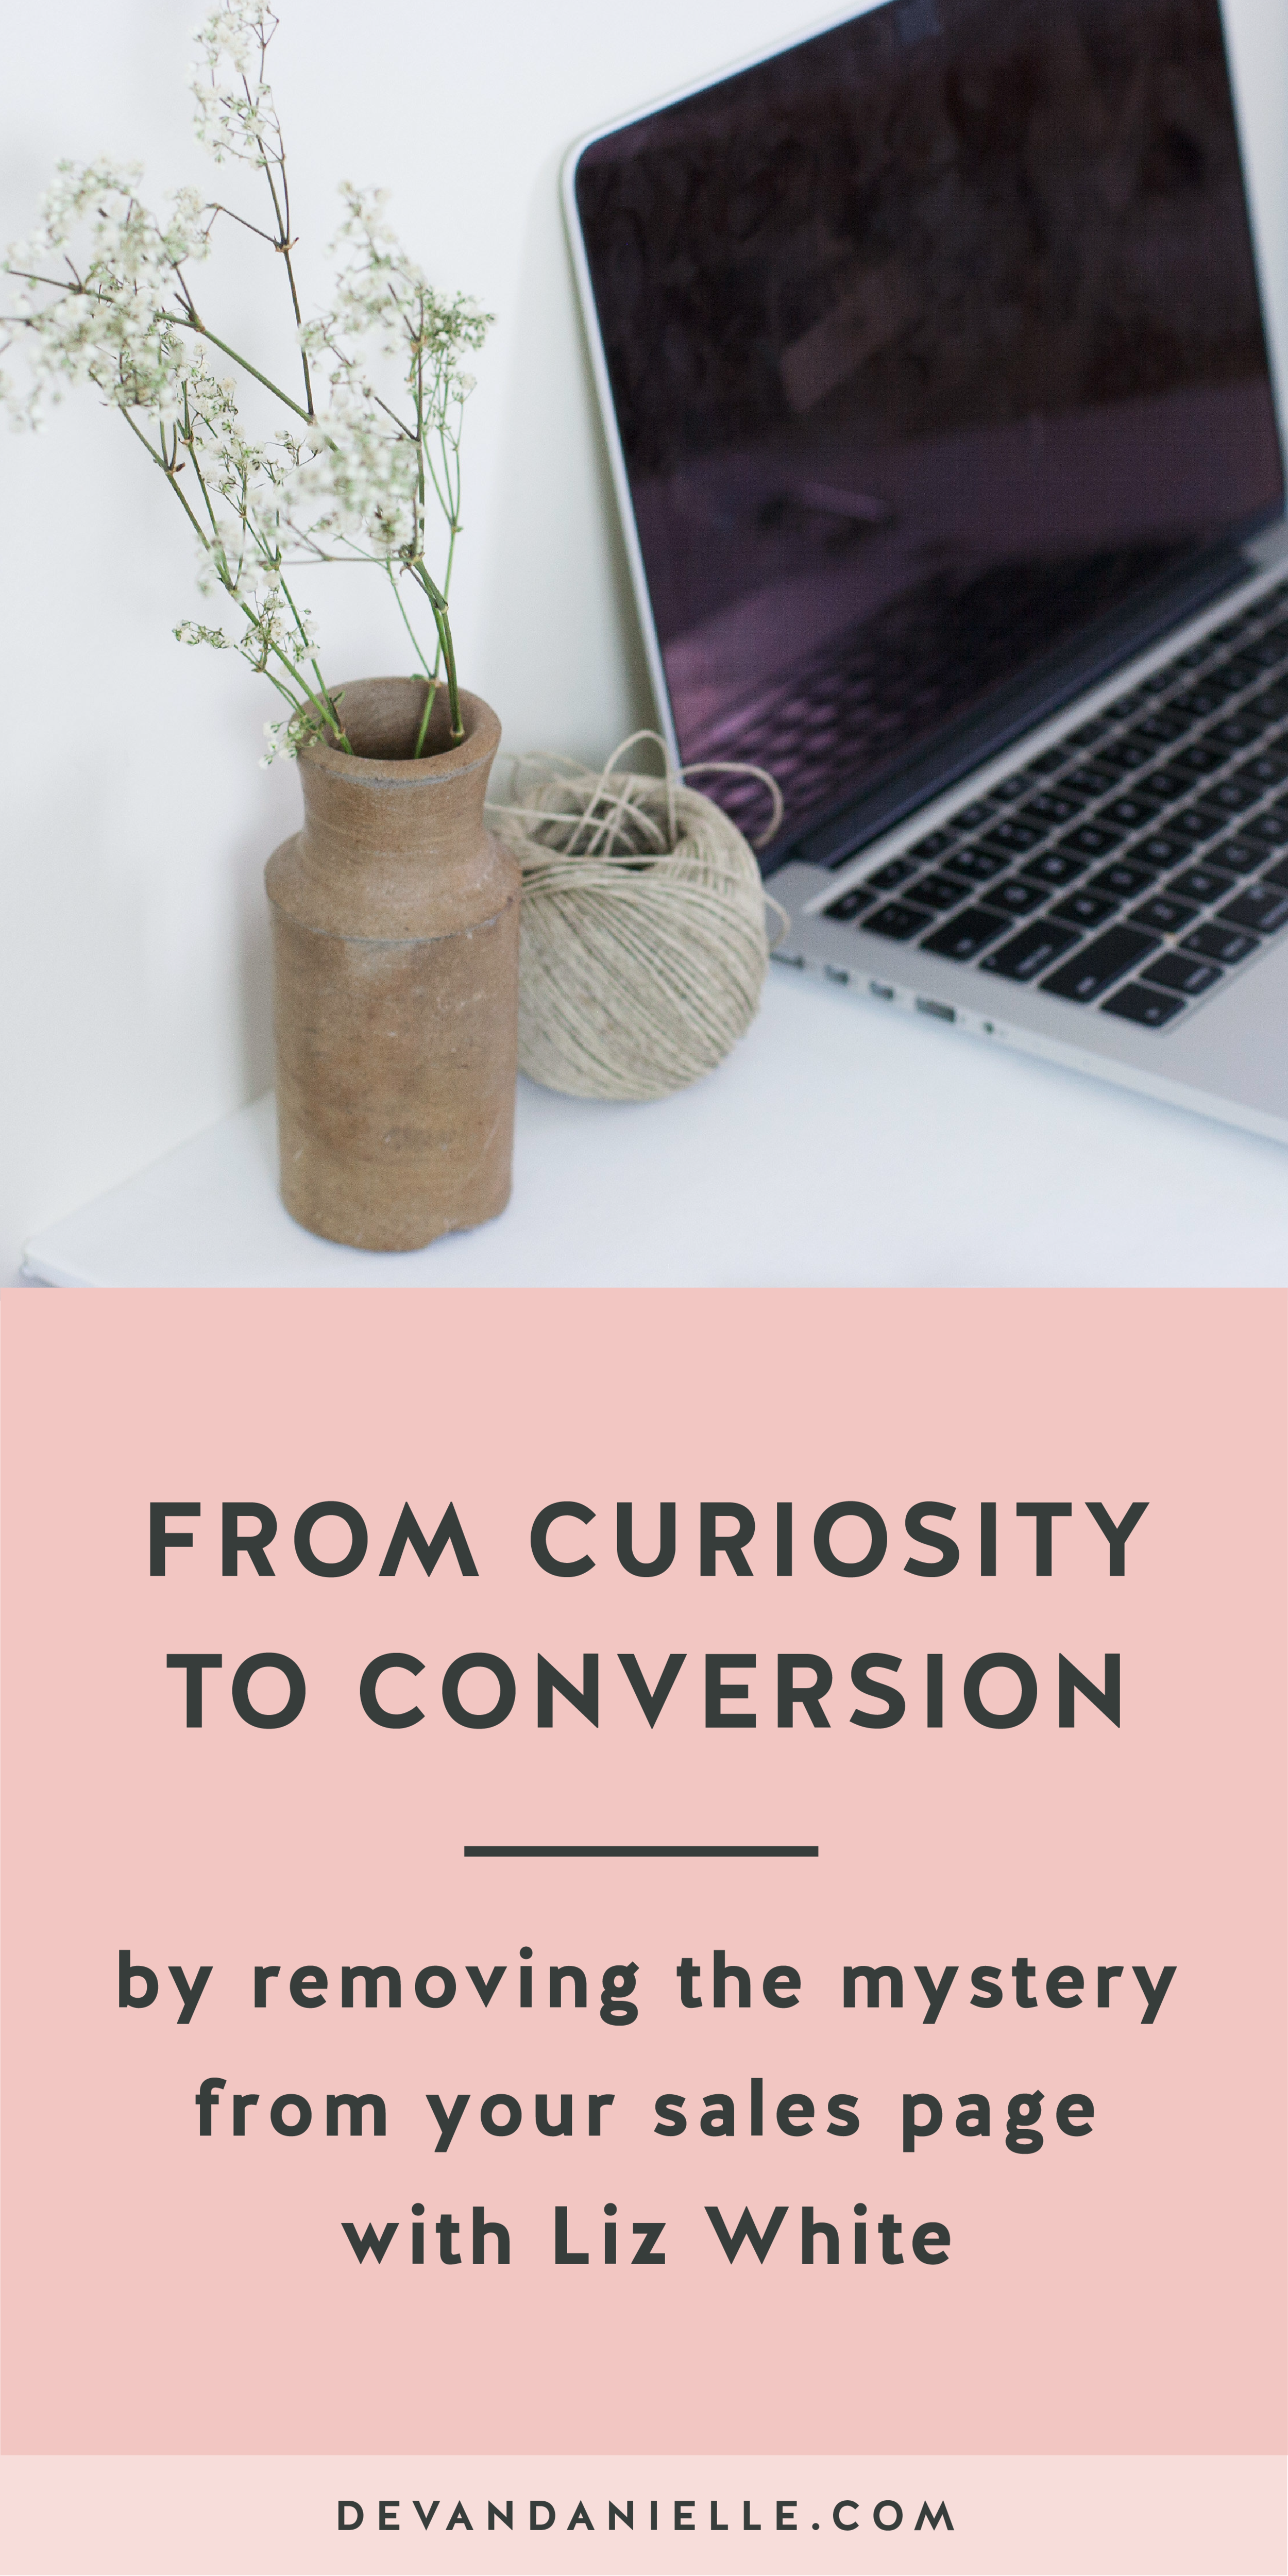 From Curiosity to Conversion